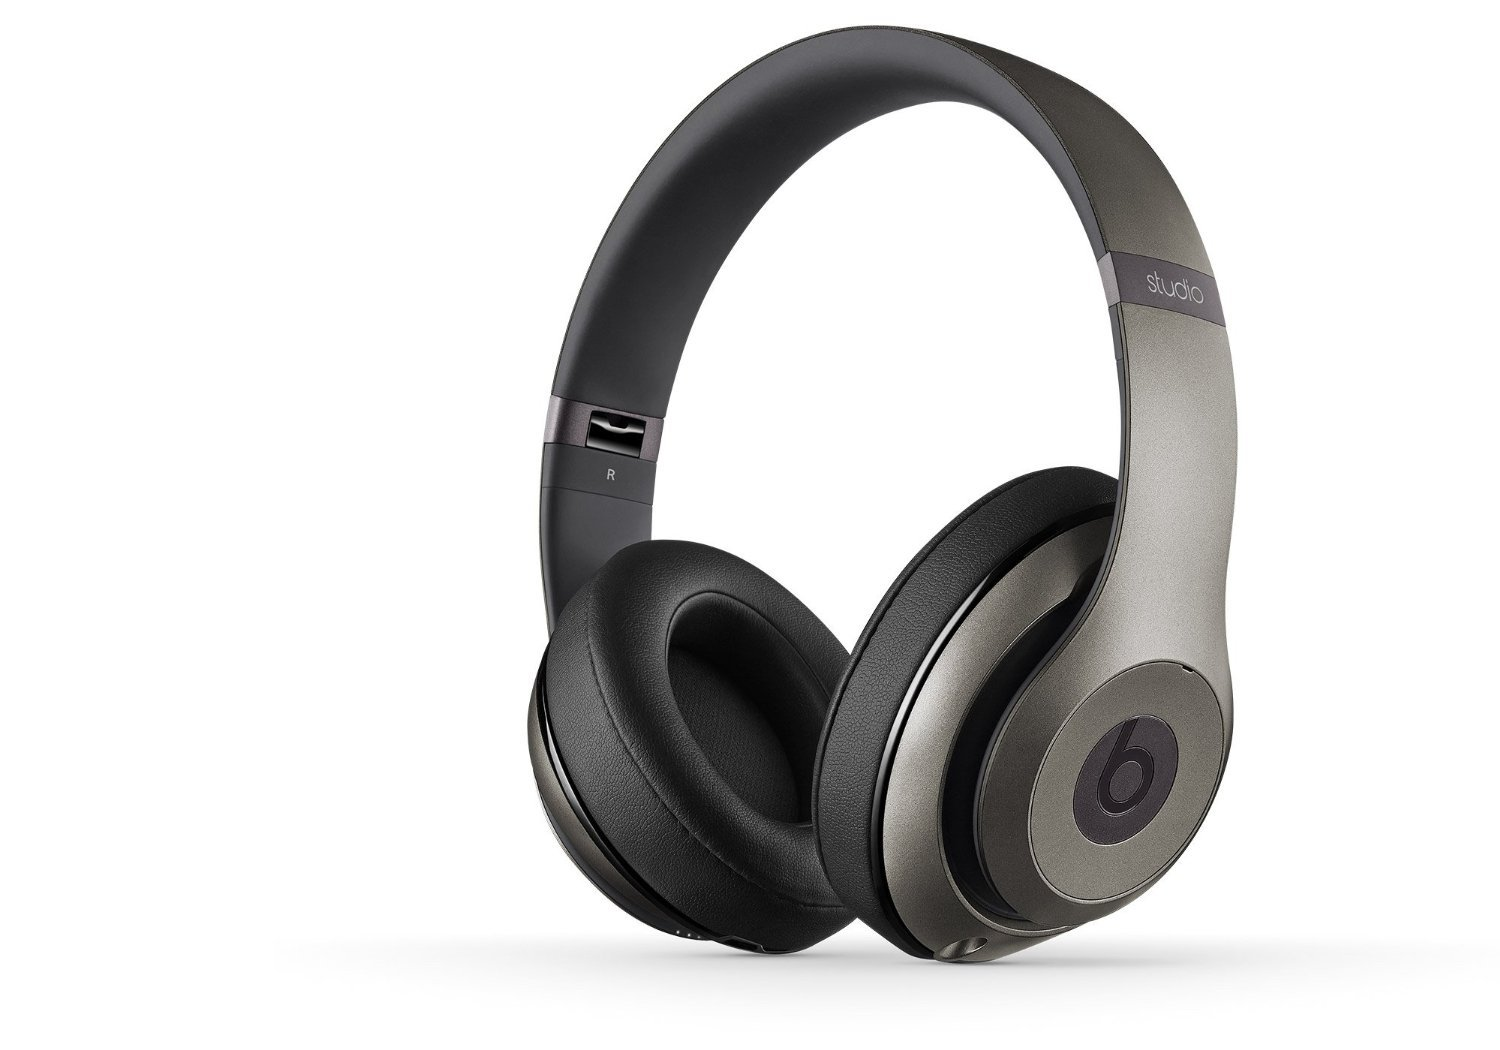 Amazon.com: Beats Studio Wireless On-Ear Headphone - Titanium (Certified Refurbished): Home Audio & Theater